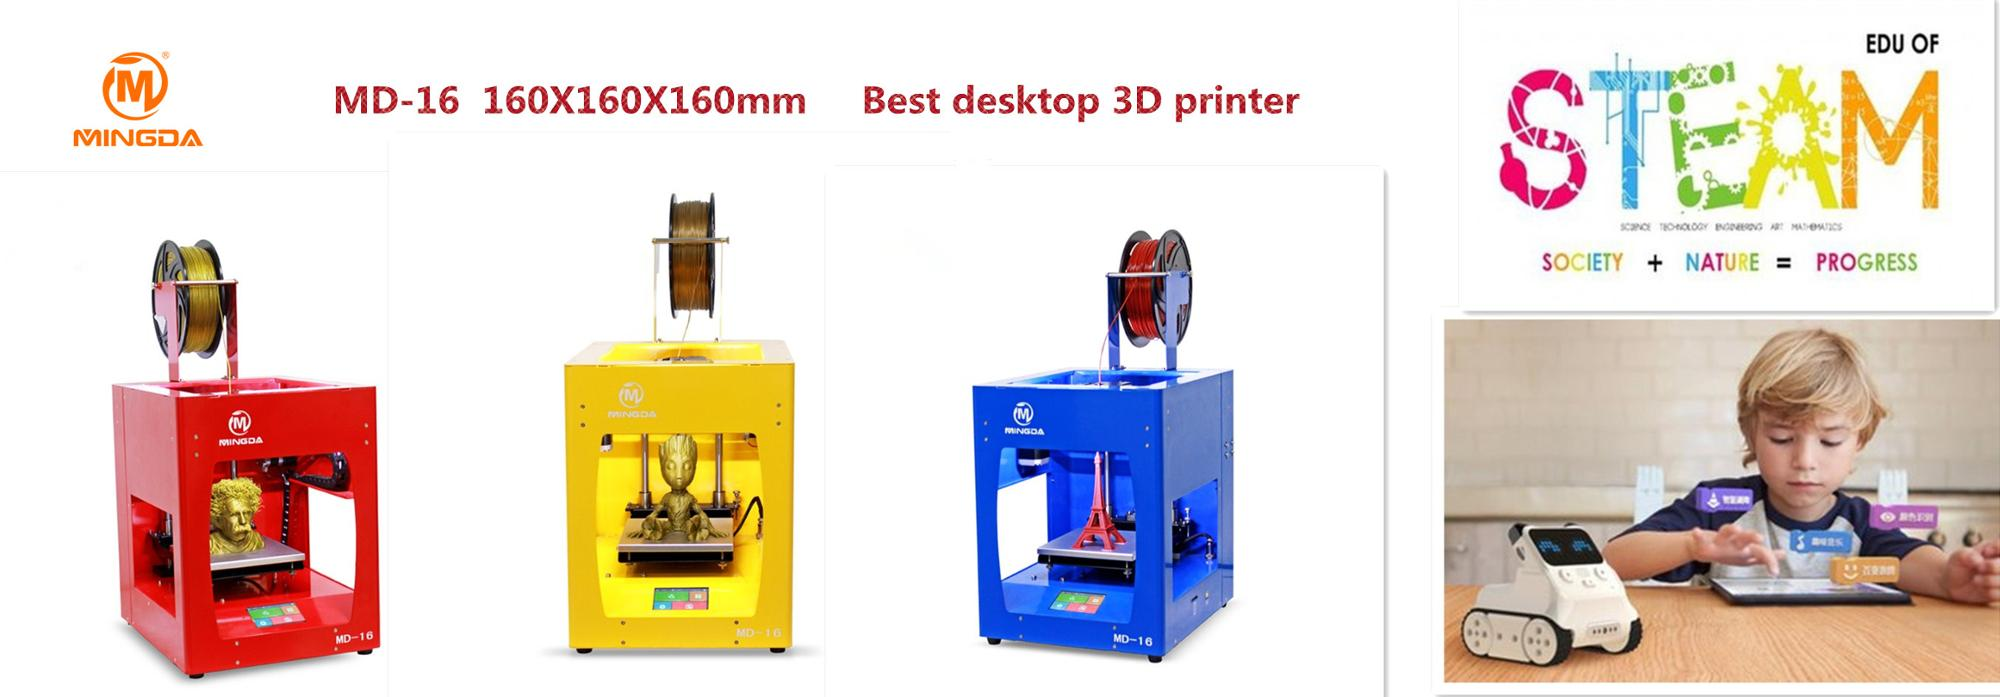 Stability Speed Vitural Image Fdm desktop 3d printer For Education